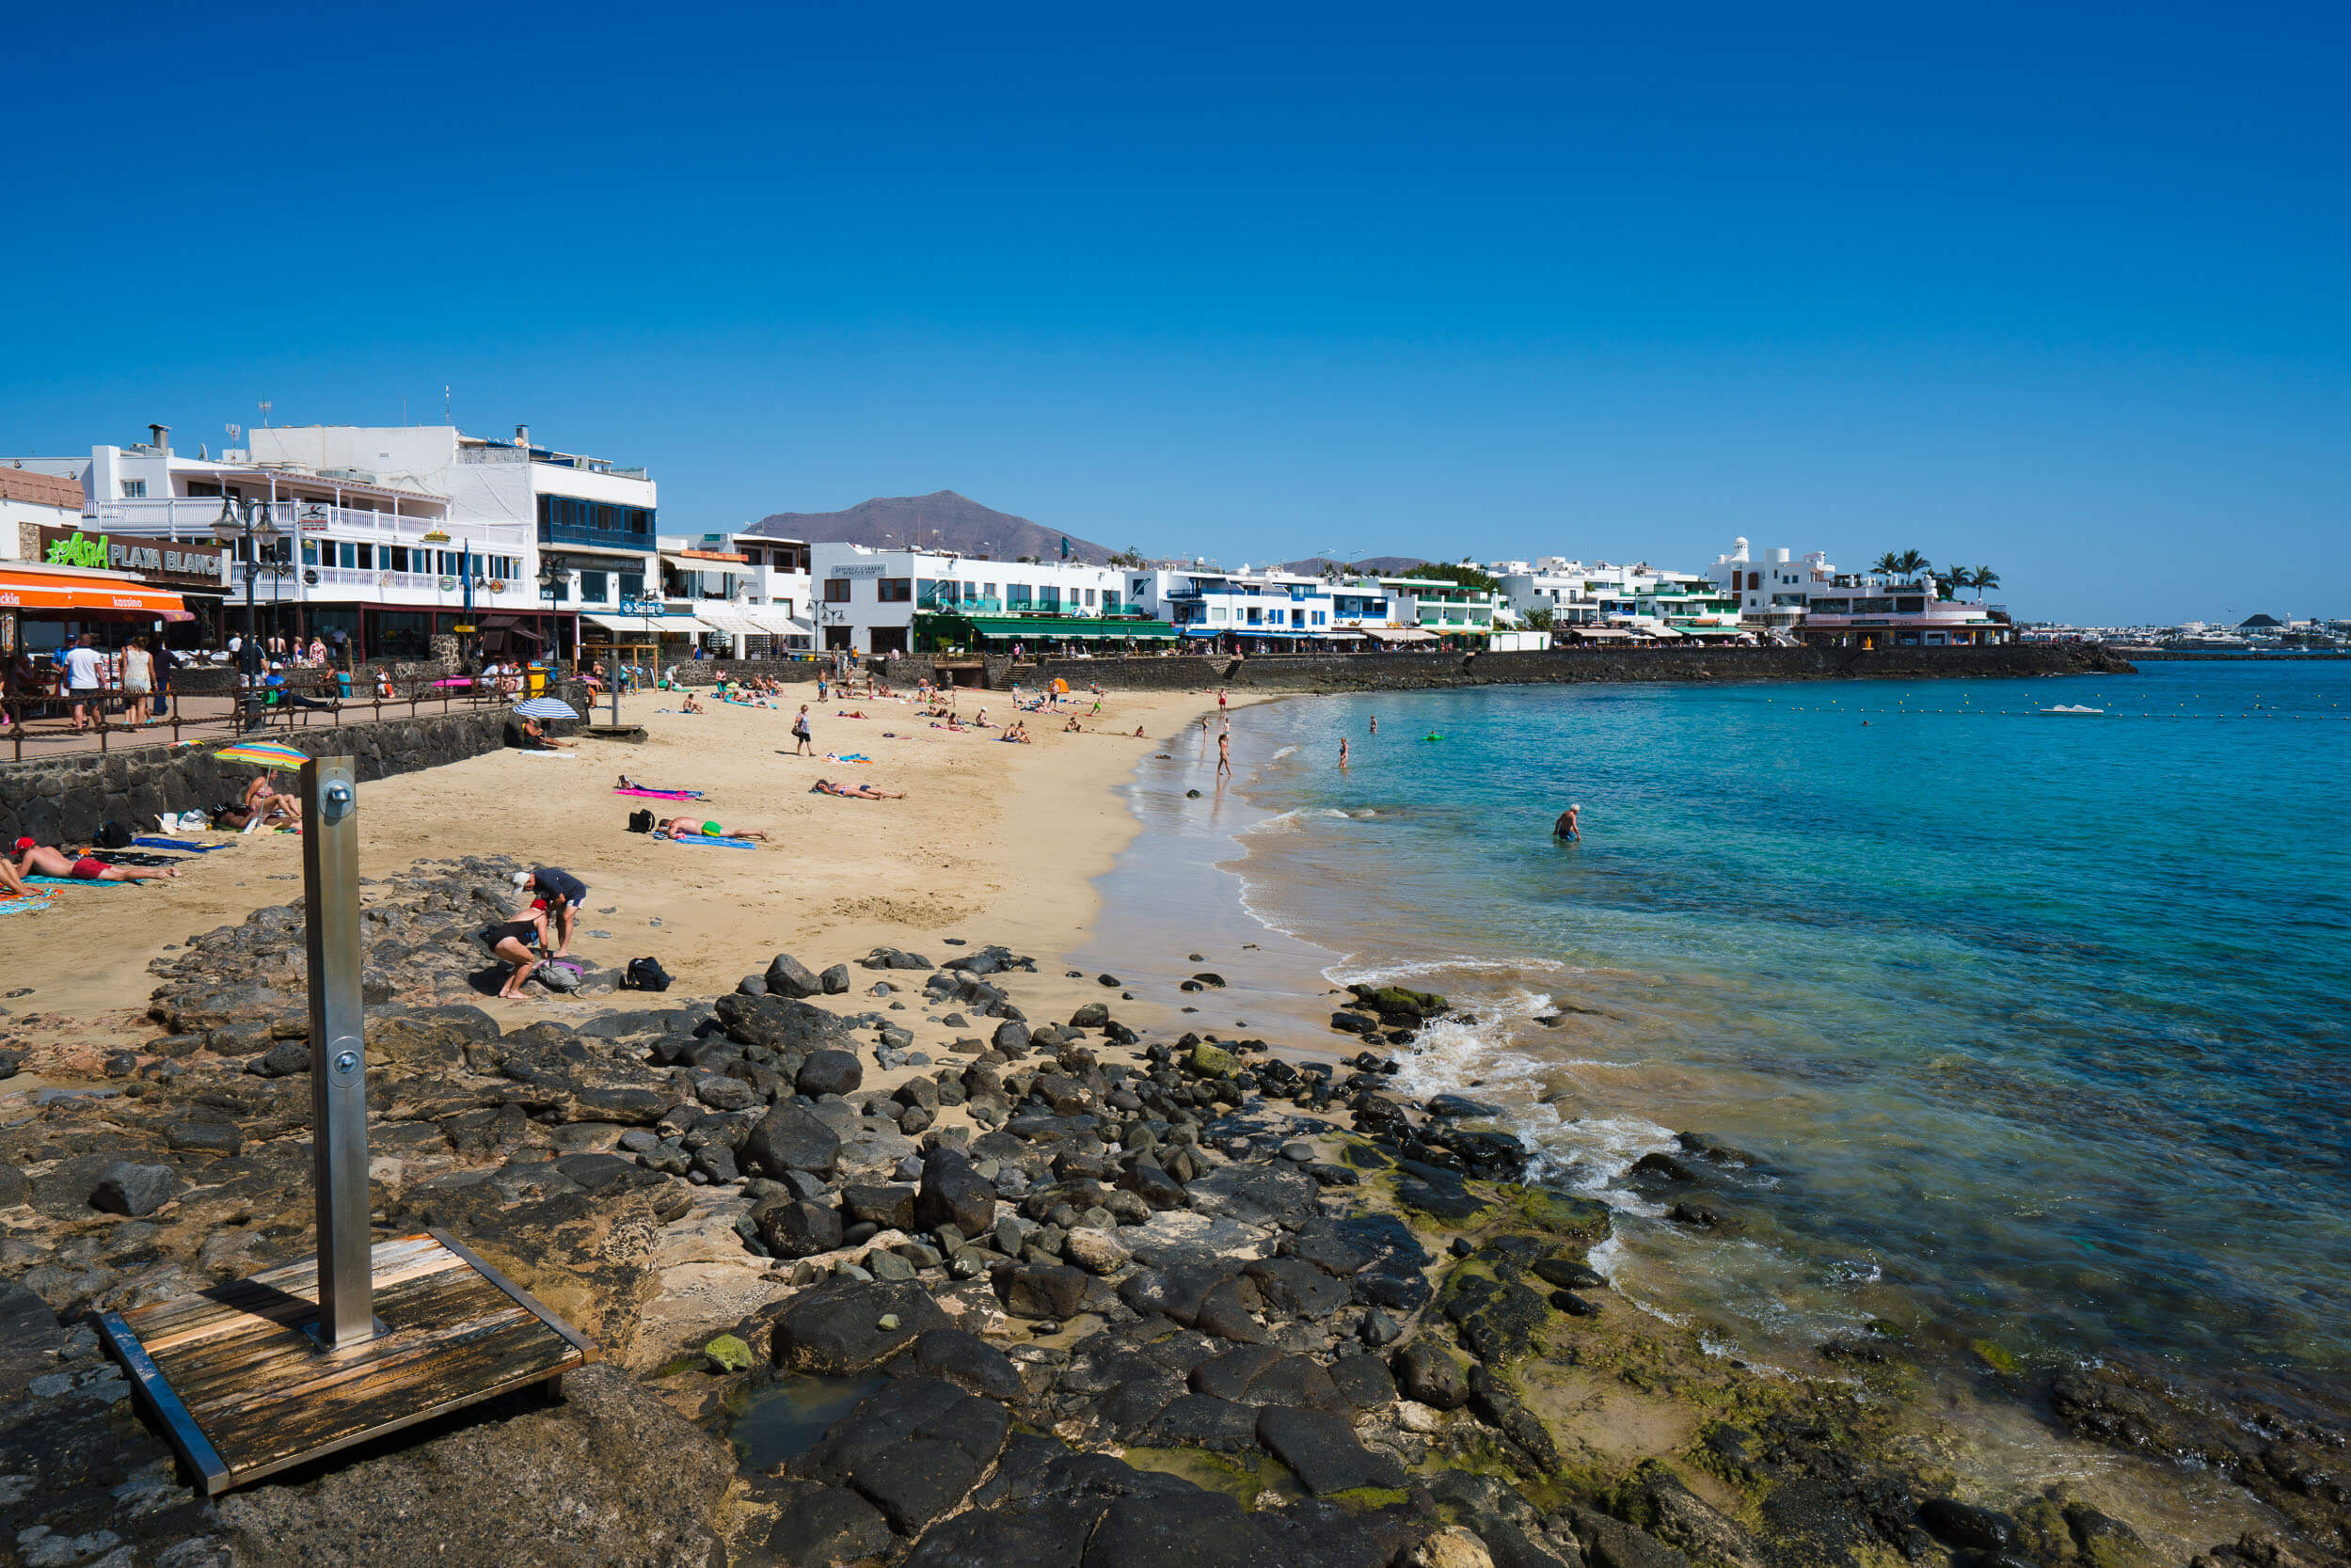 Image Article All about Playa Blanca - Tourism and Surf in Lanzarote